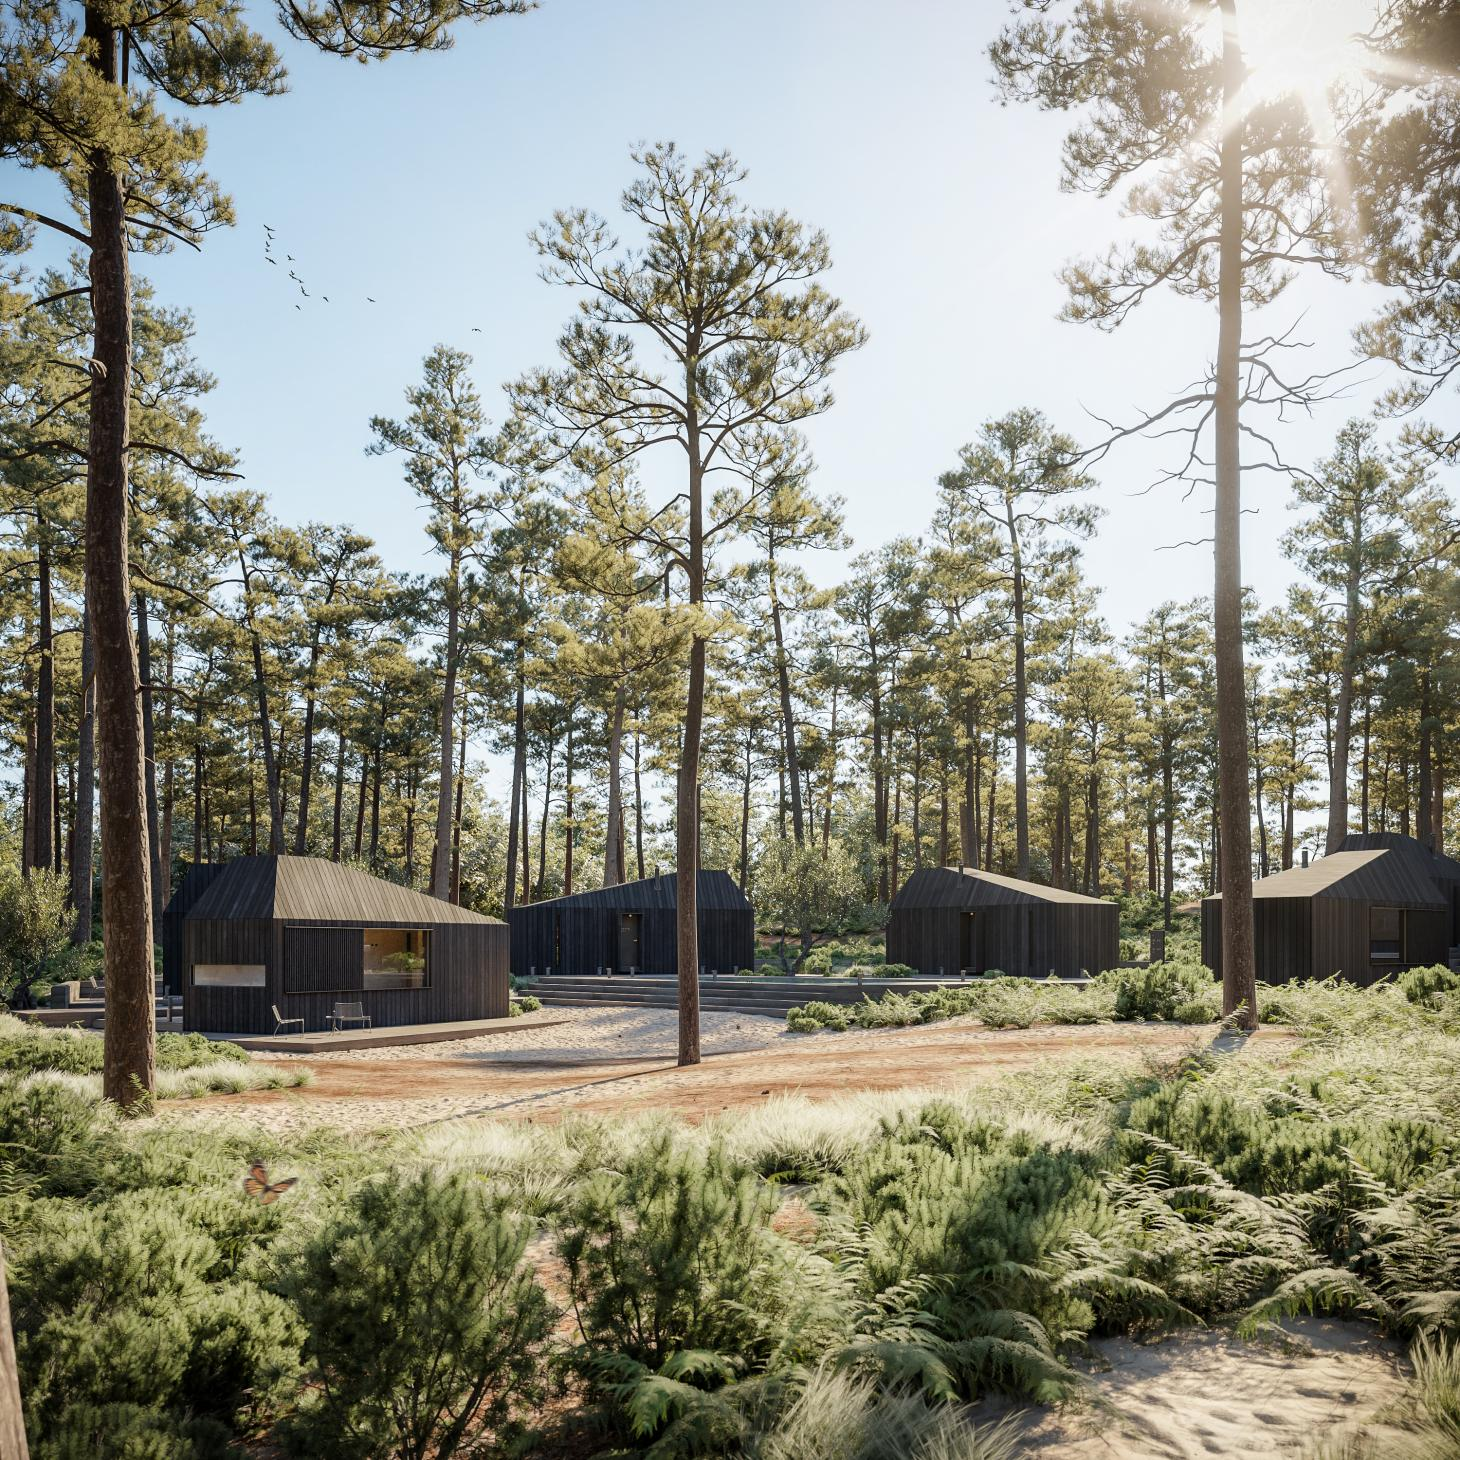 a series of beautiful wooden cabins, Hytte is a special project in the woods